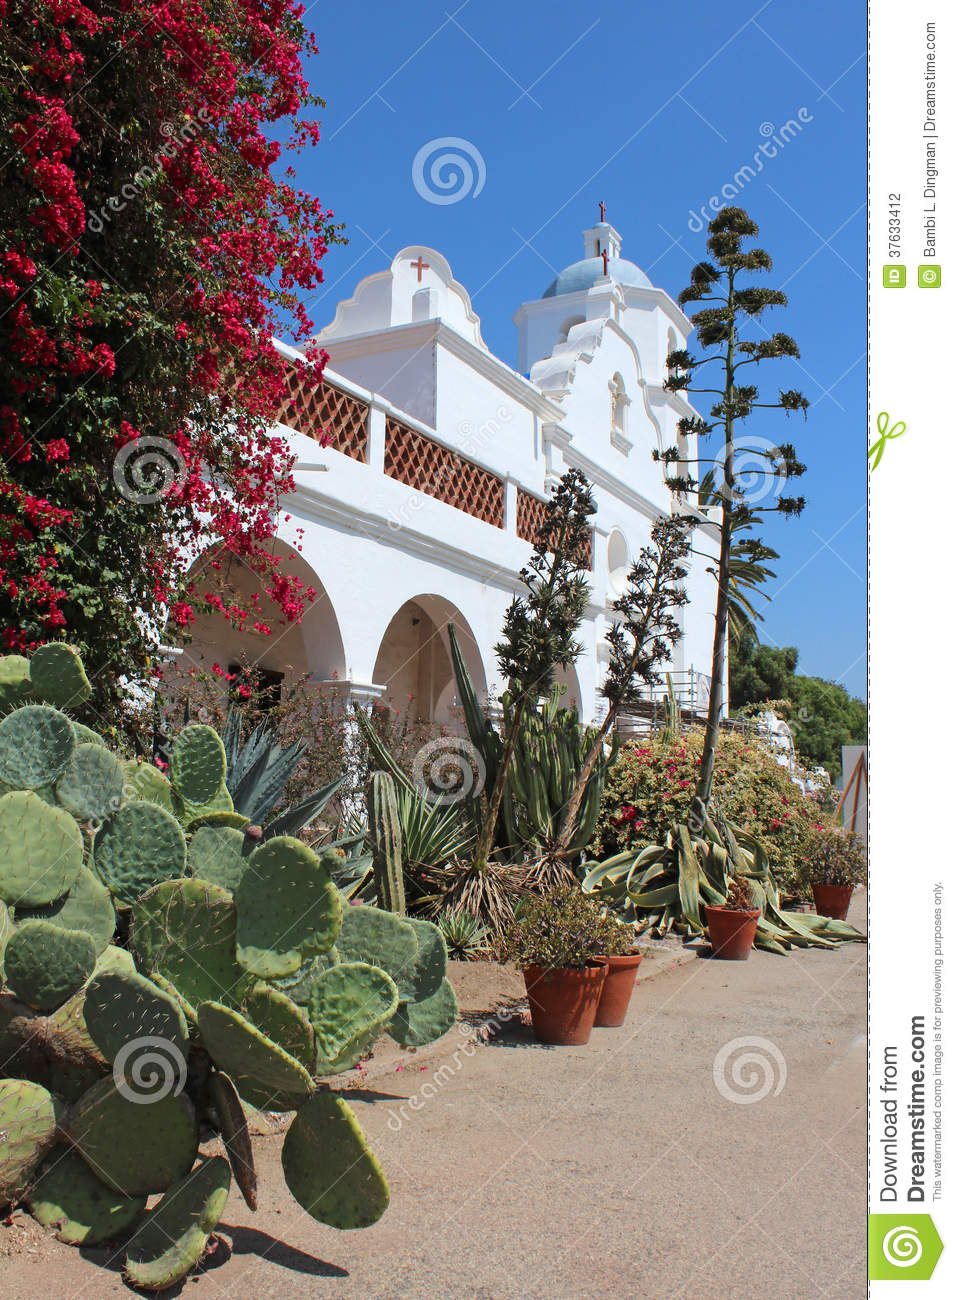 san luis rey singles Title: directions tours 2016 / 2017 catalog, author: $ 189700 pp dbl singles only $25000 addtl another stop will be at the mission san luis rey de francia.